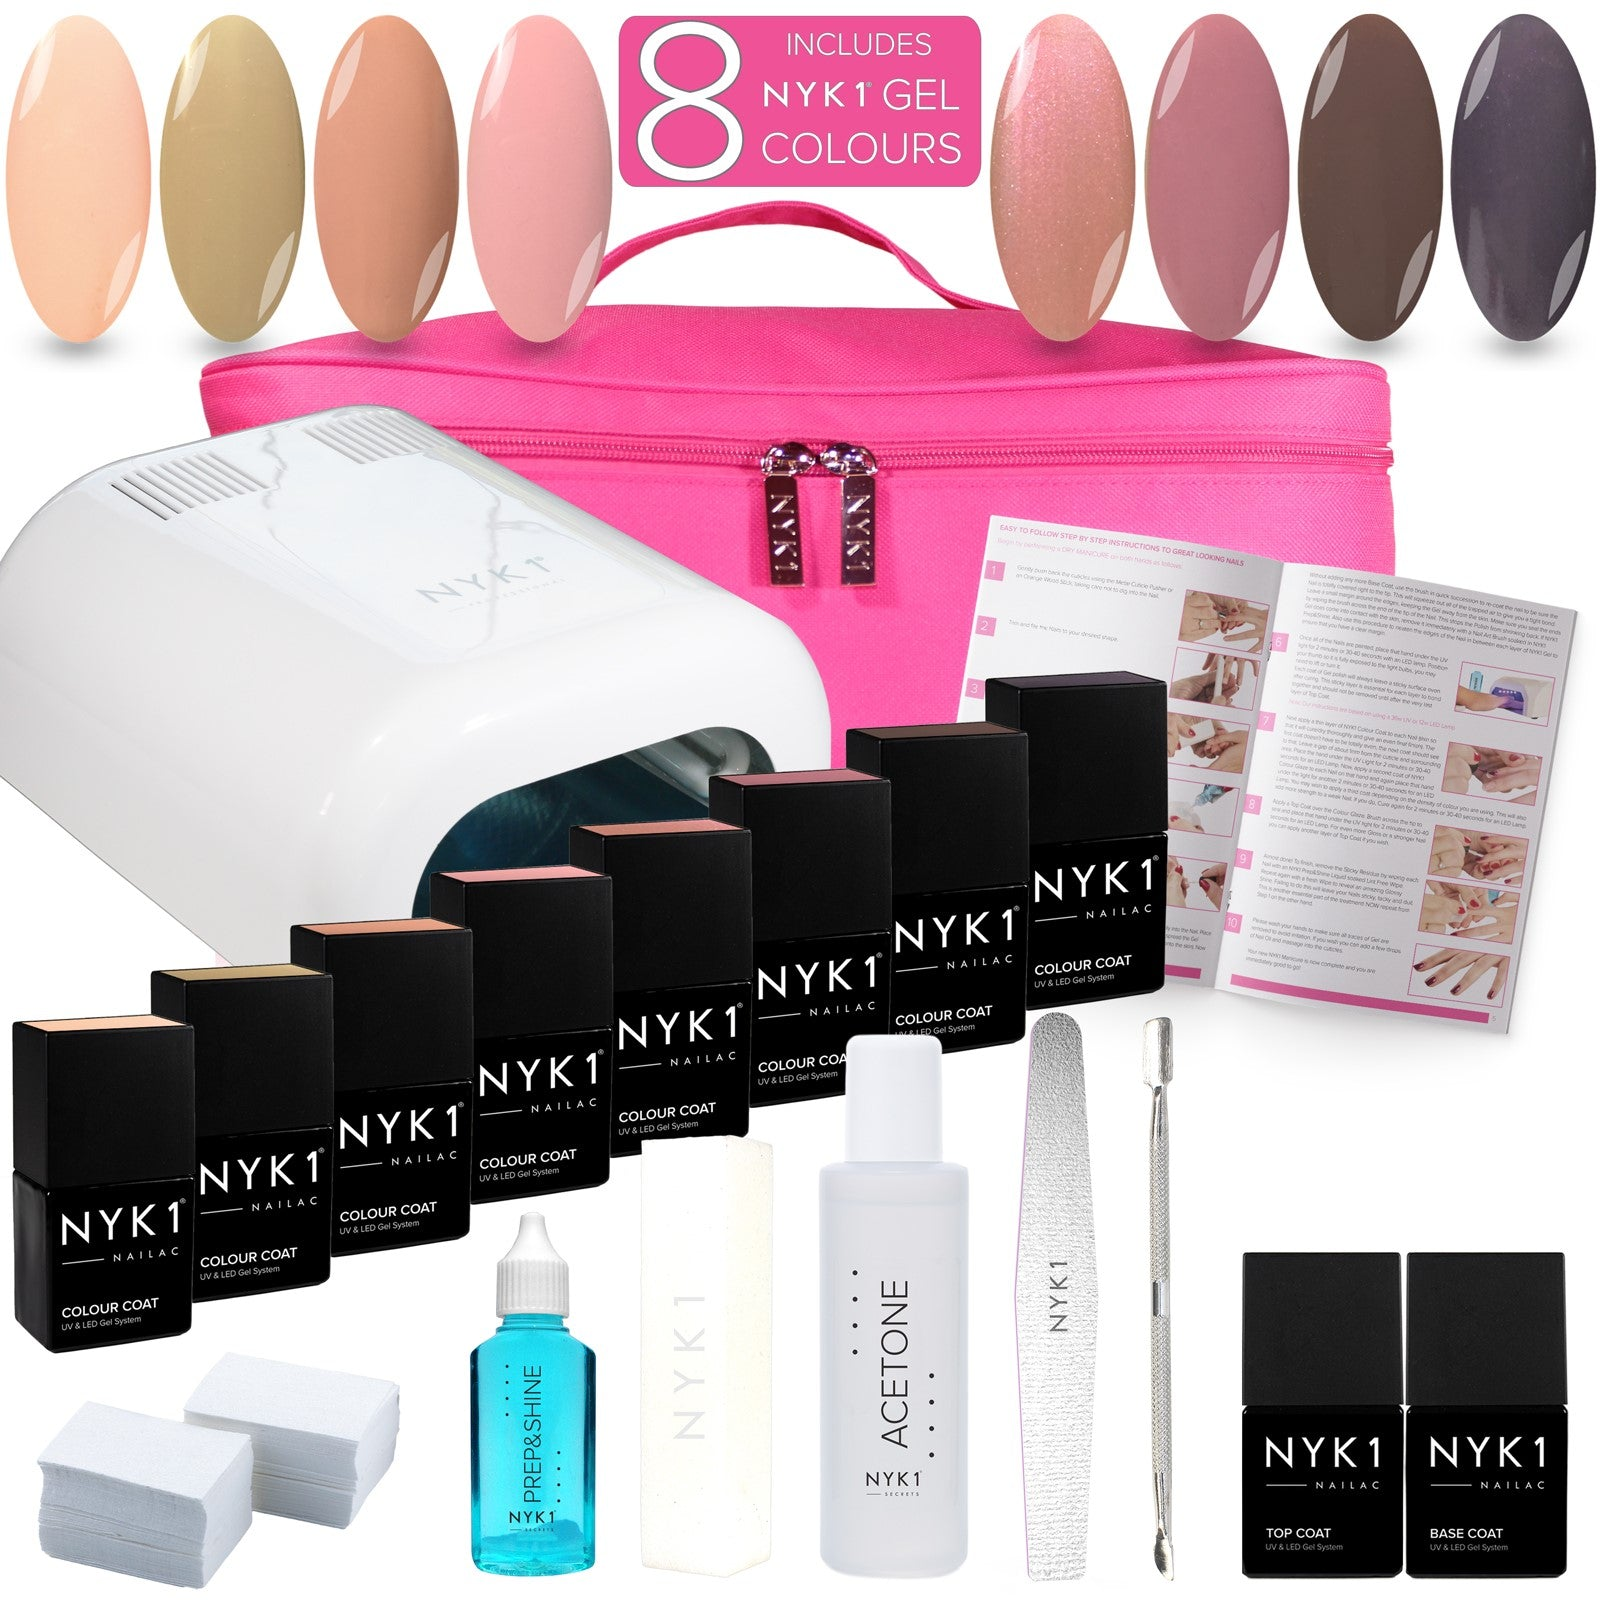 NYK1 Hollywood Gel Nail Starter Kit with 8 Colours Gift Set